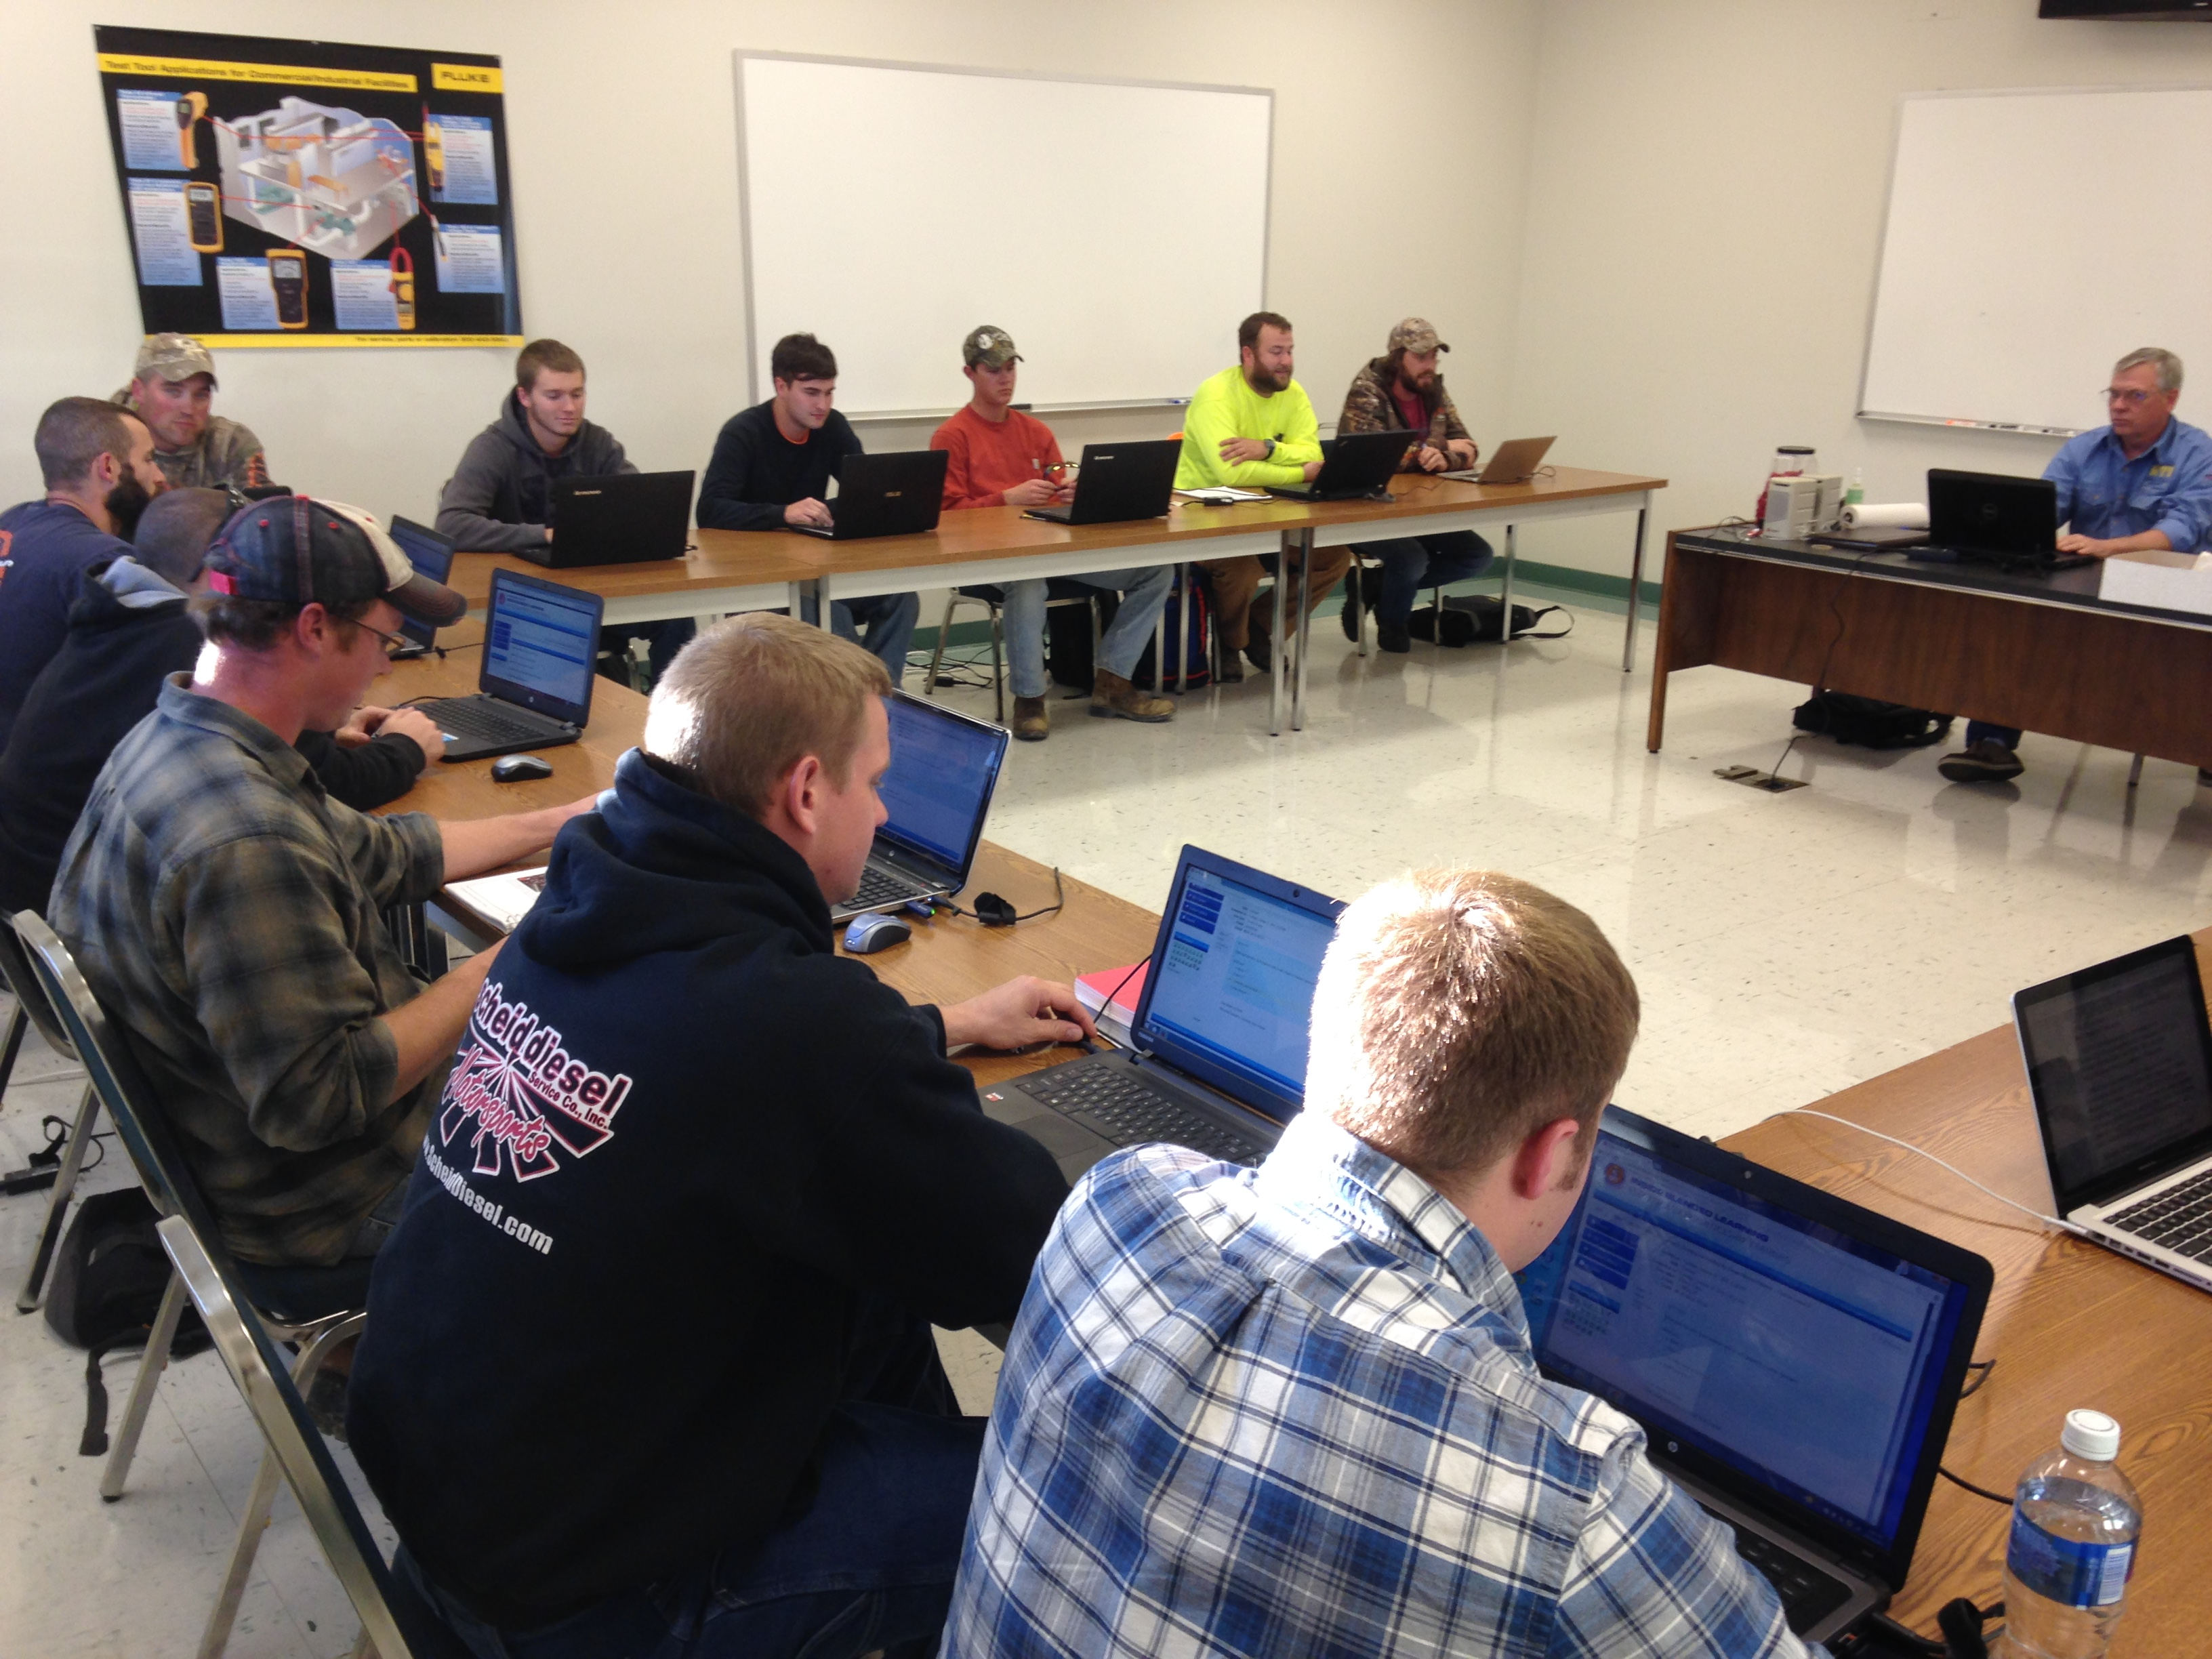 Students at the  NECA/IBEW Electrical Training School in a classroom with the instructor